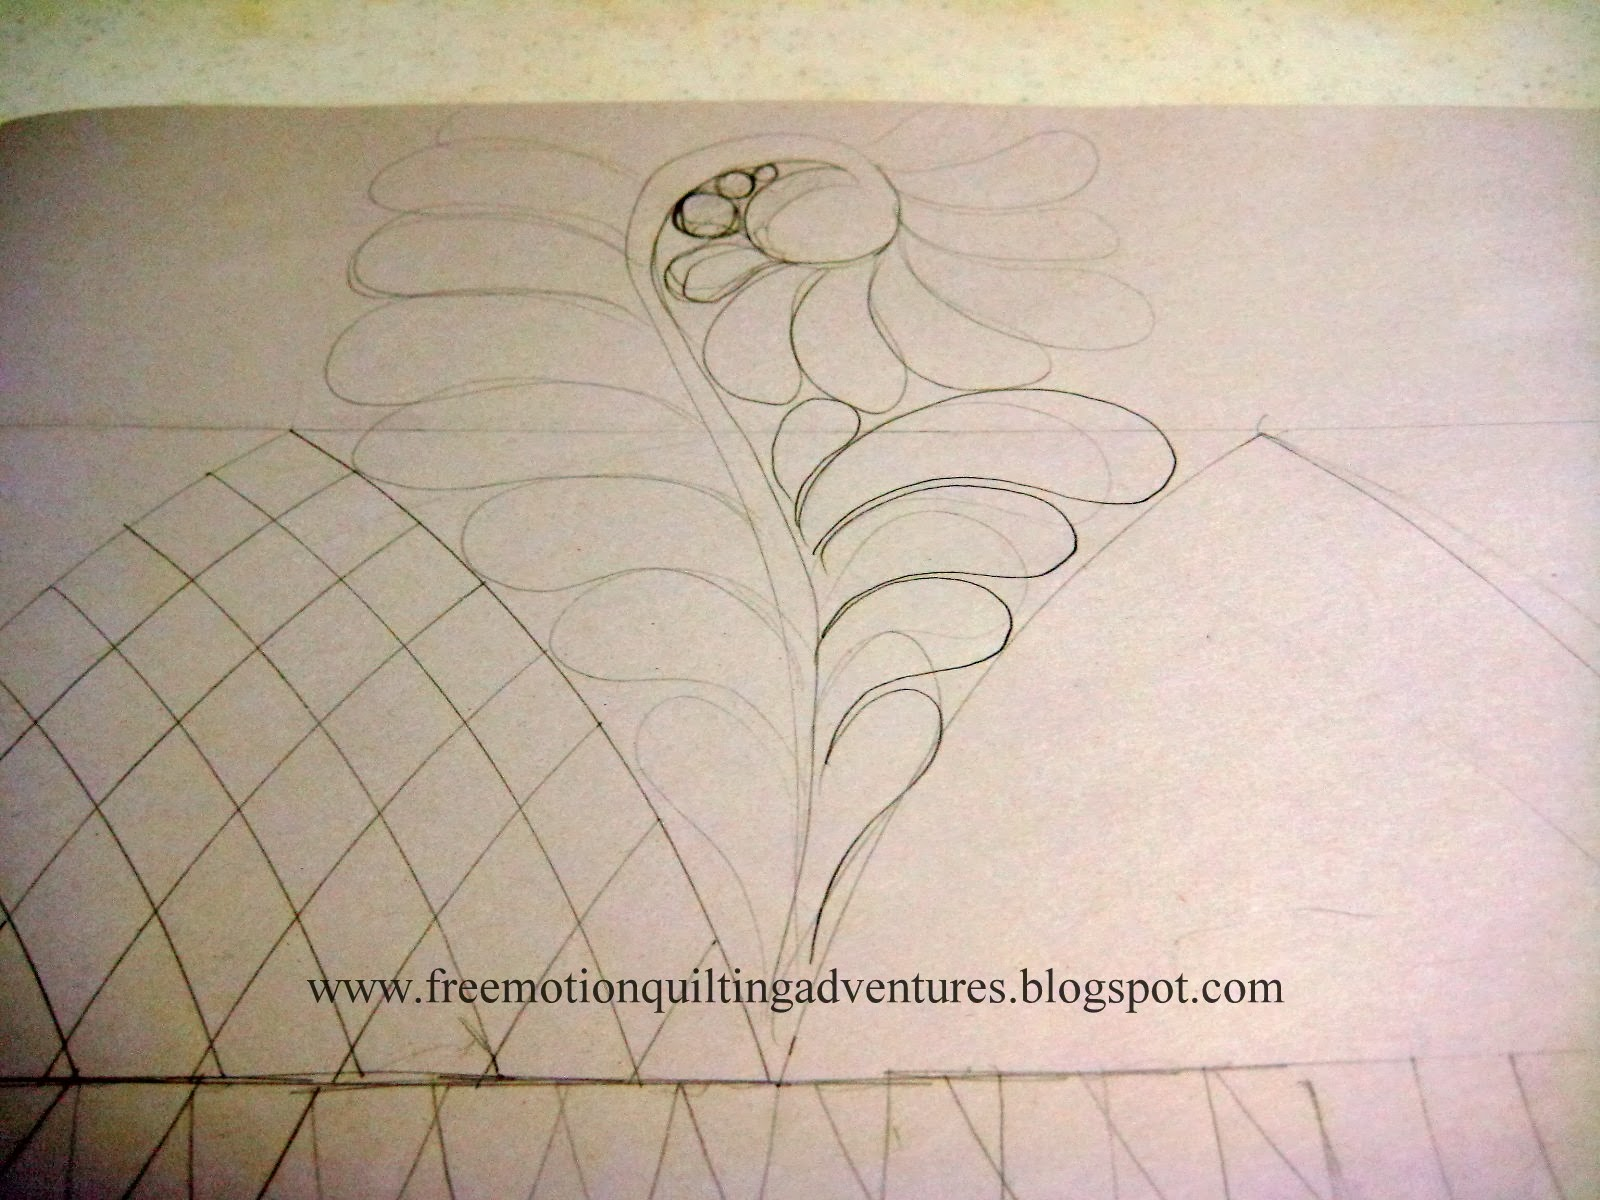 planning free motion quilting designs, crosshatching and feathers